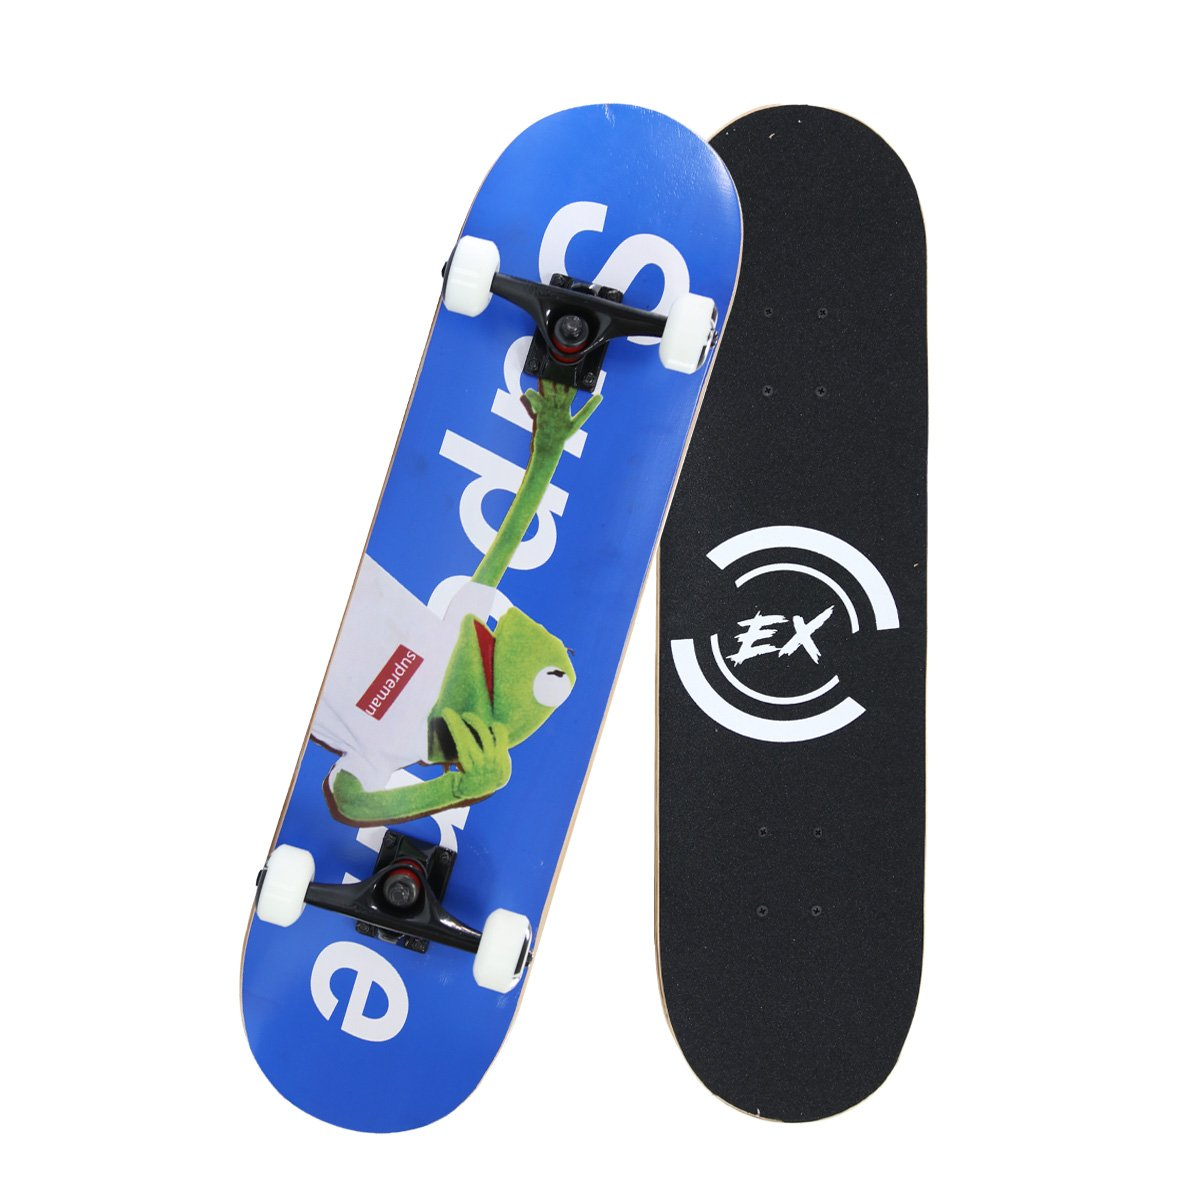 Pro Skateboard 31'' X 8'' Standard Skateboards Cruiser Complete Canadian Maple 10 Layers Double Kick Concave Skate Boards